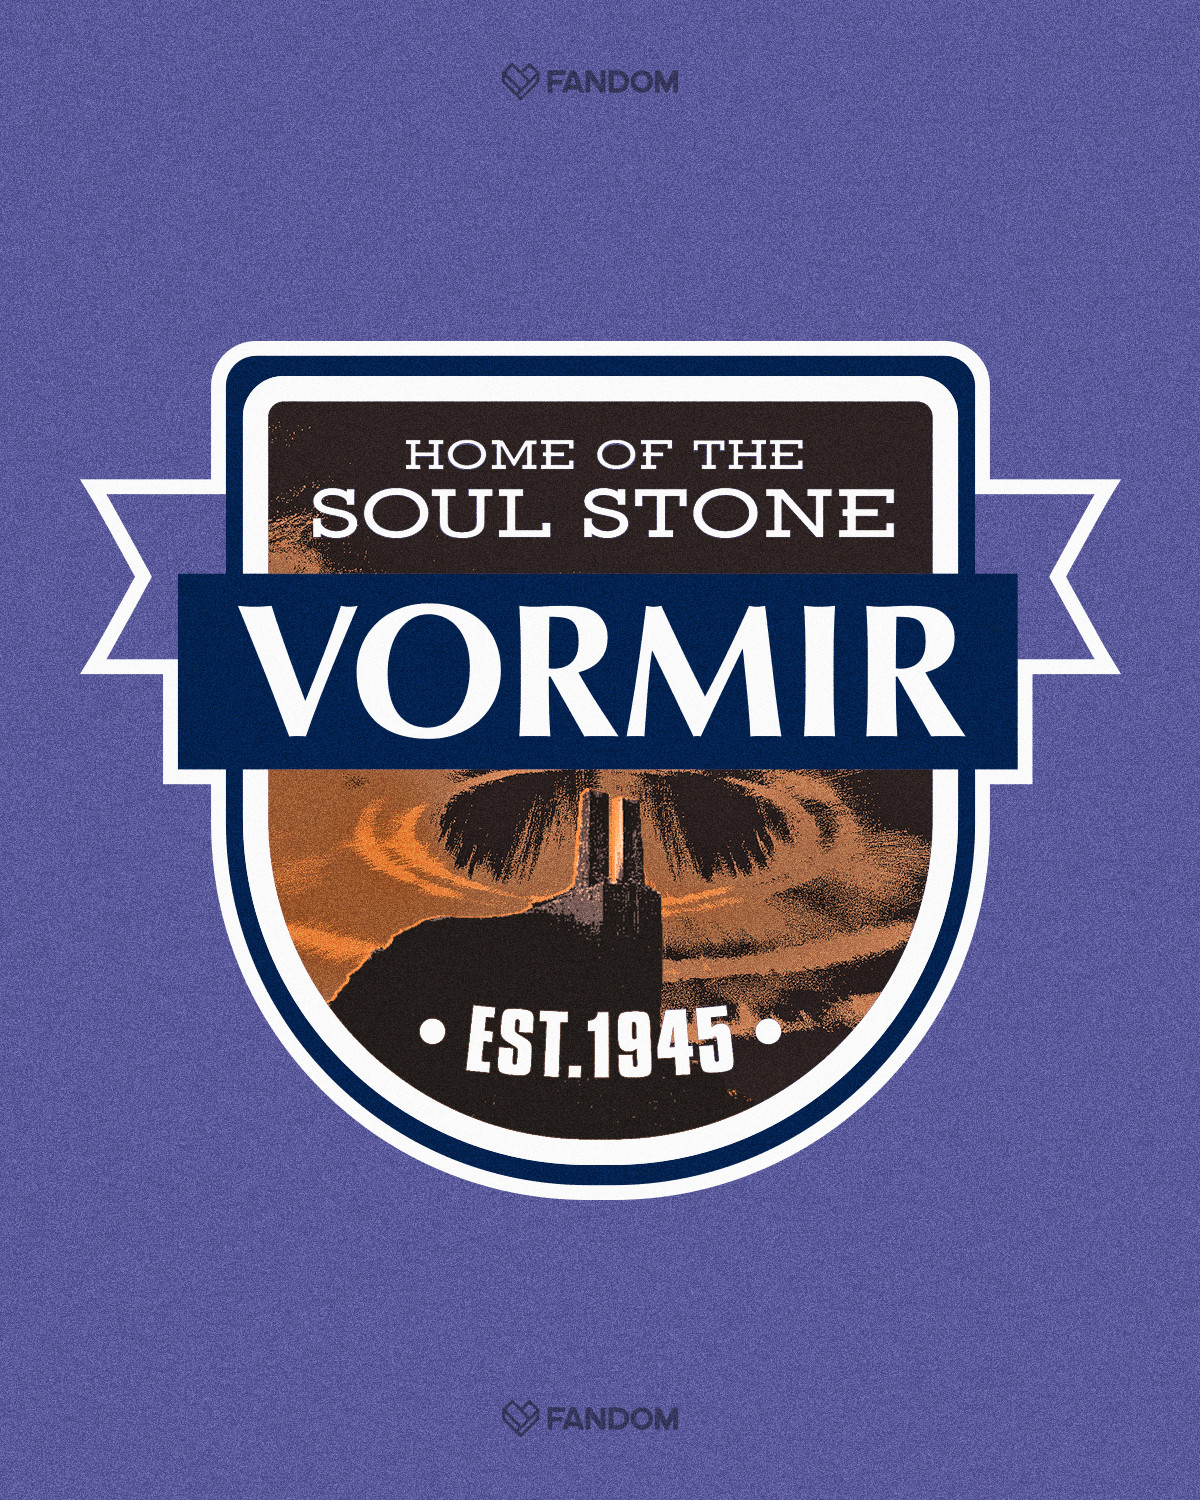 Vormir: Home of the Soul Stone